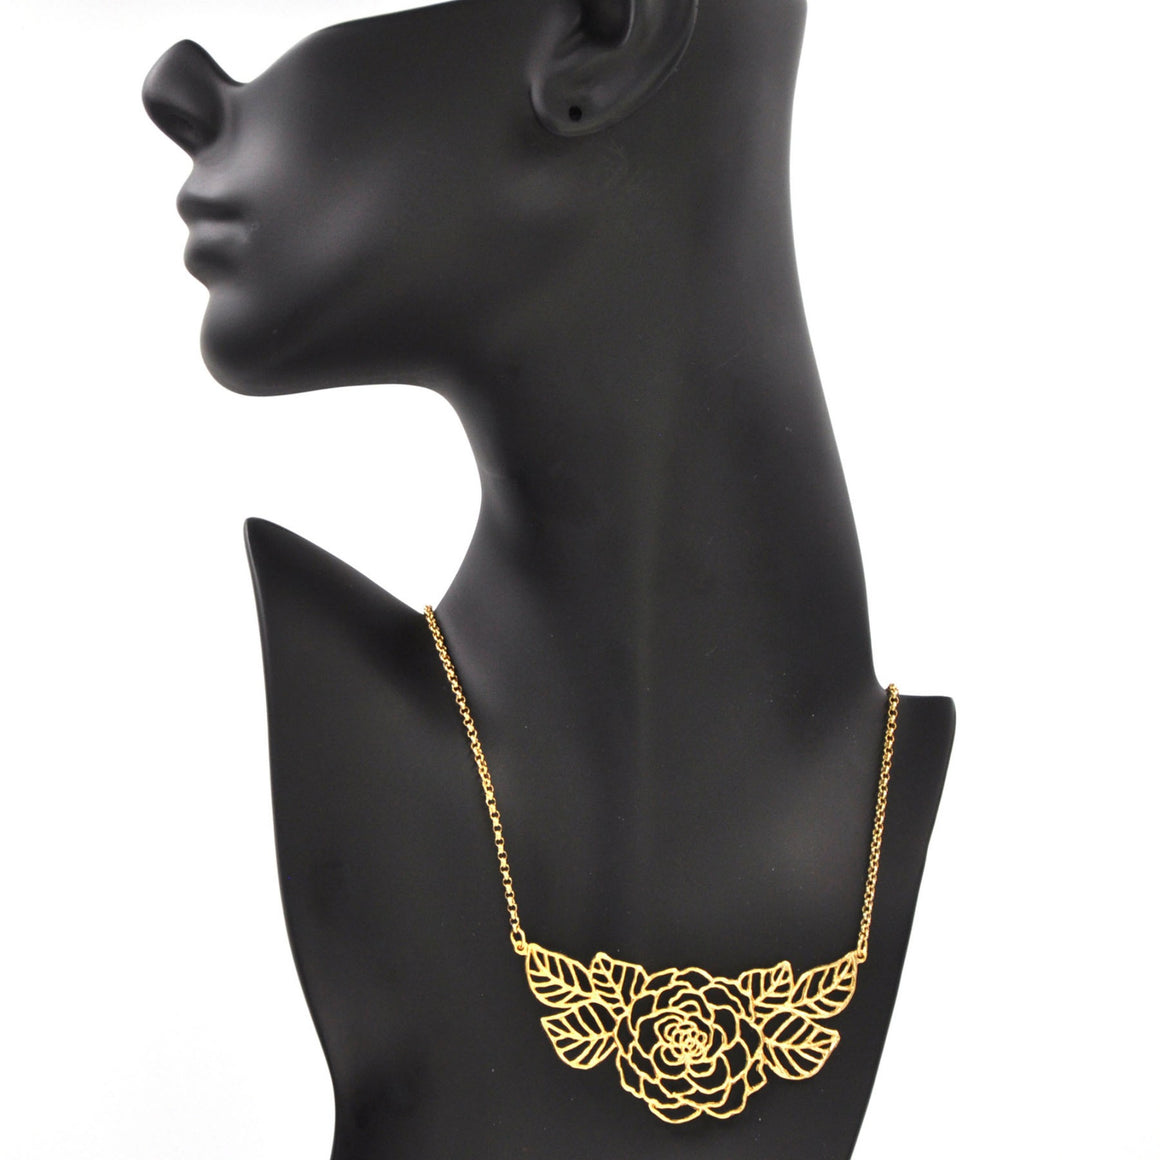 Rose Collar Necklace with Leaves - 24K Gold Plated